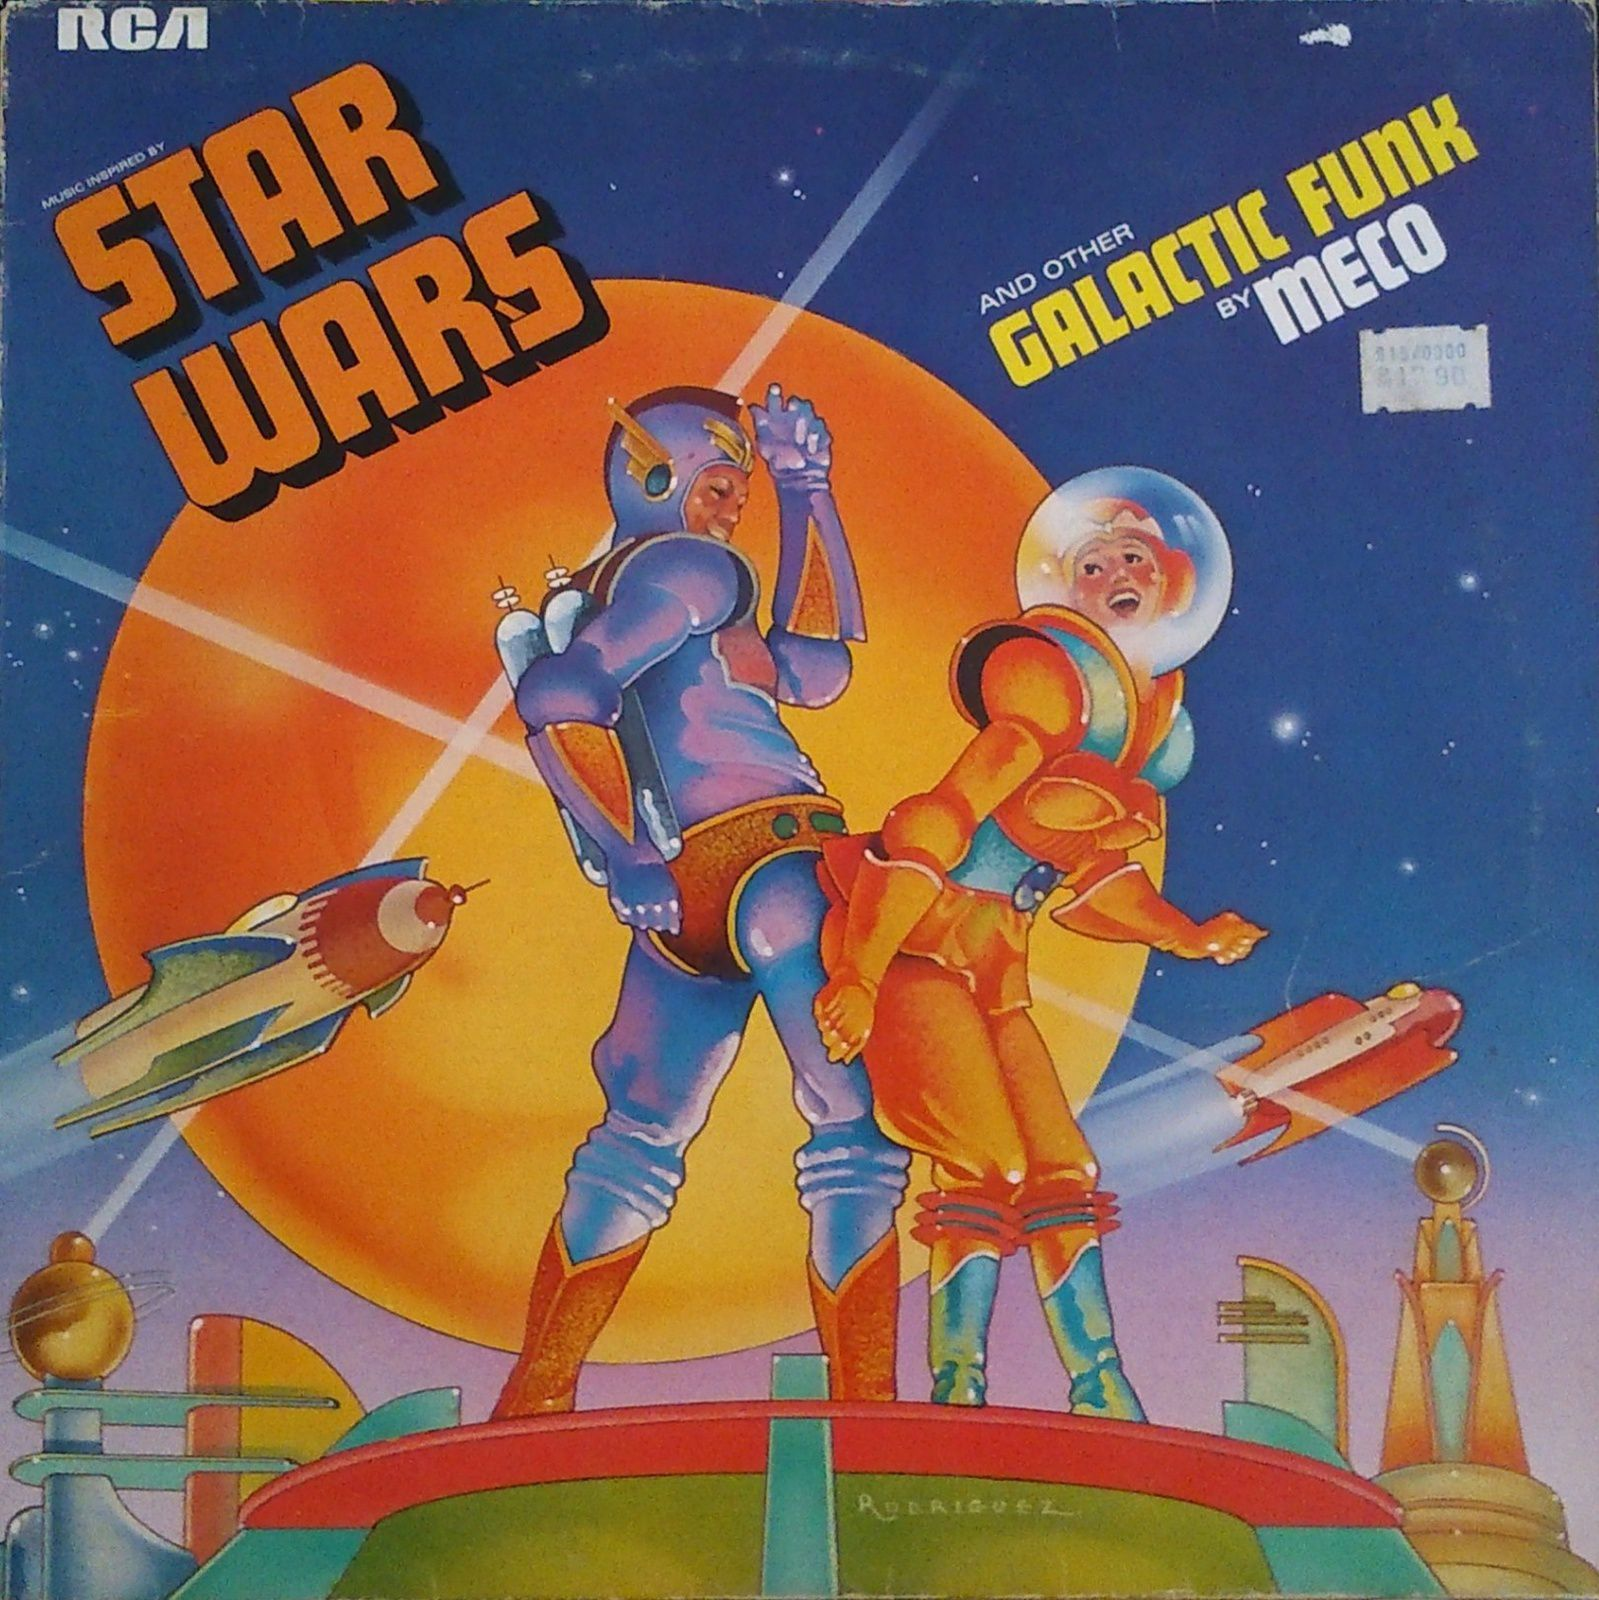 Meco - Music inspired by Star Wars ans other Galactic Funk LP (RCA Victor - 1977)